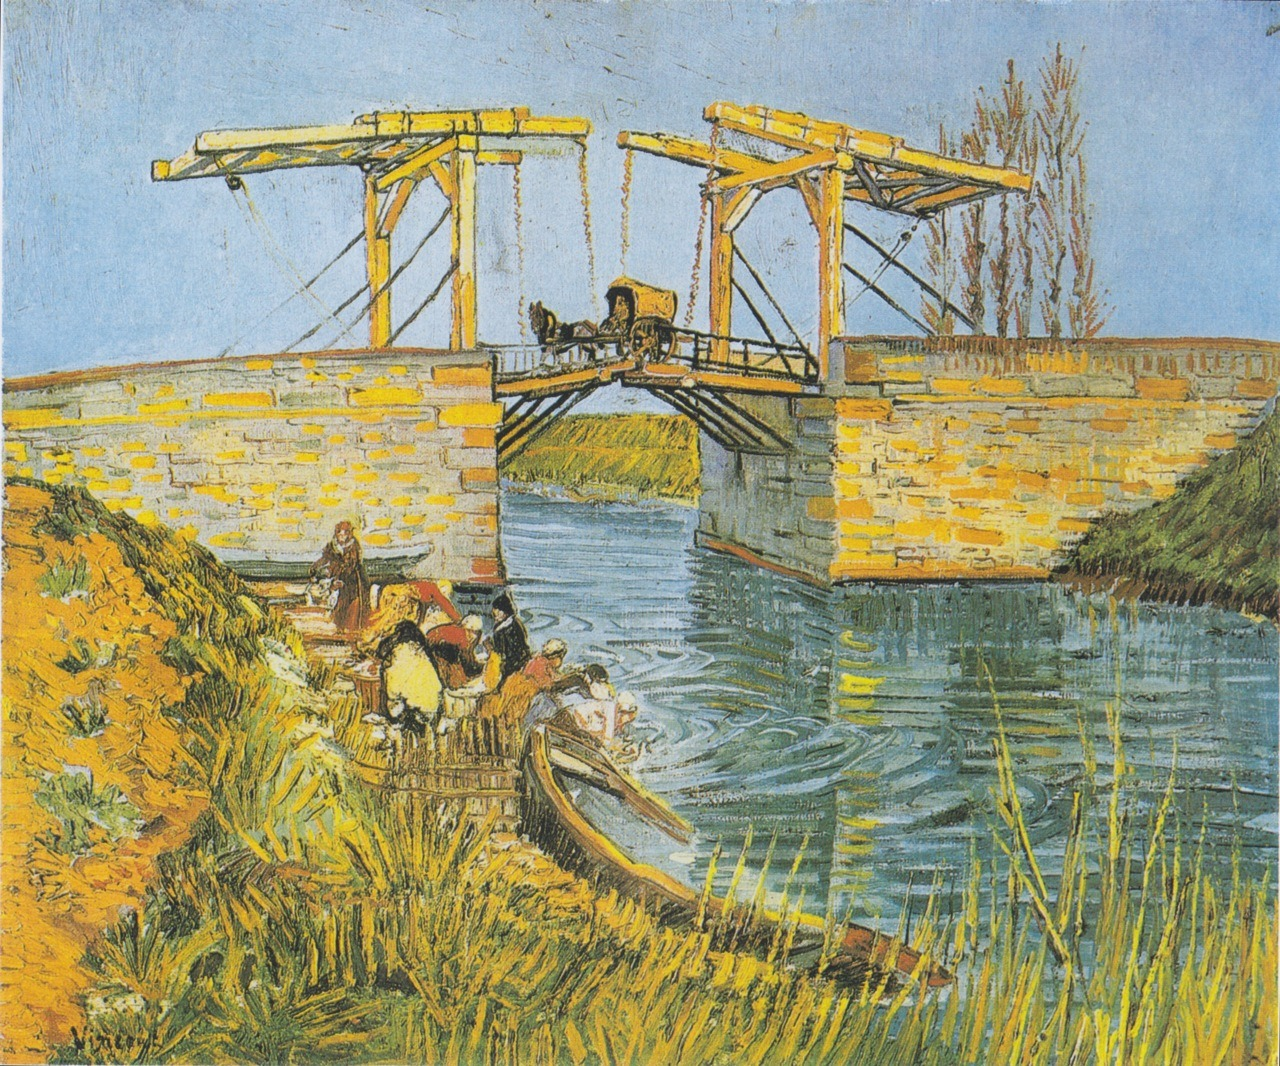 Vincent van Gogh, The Langlois Bridge at Arles with Women Washing